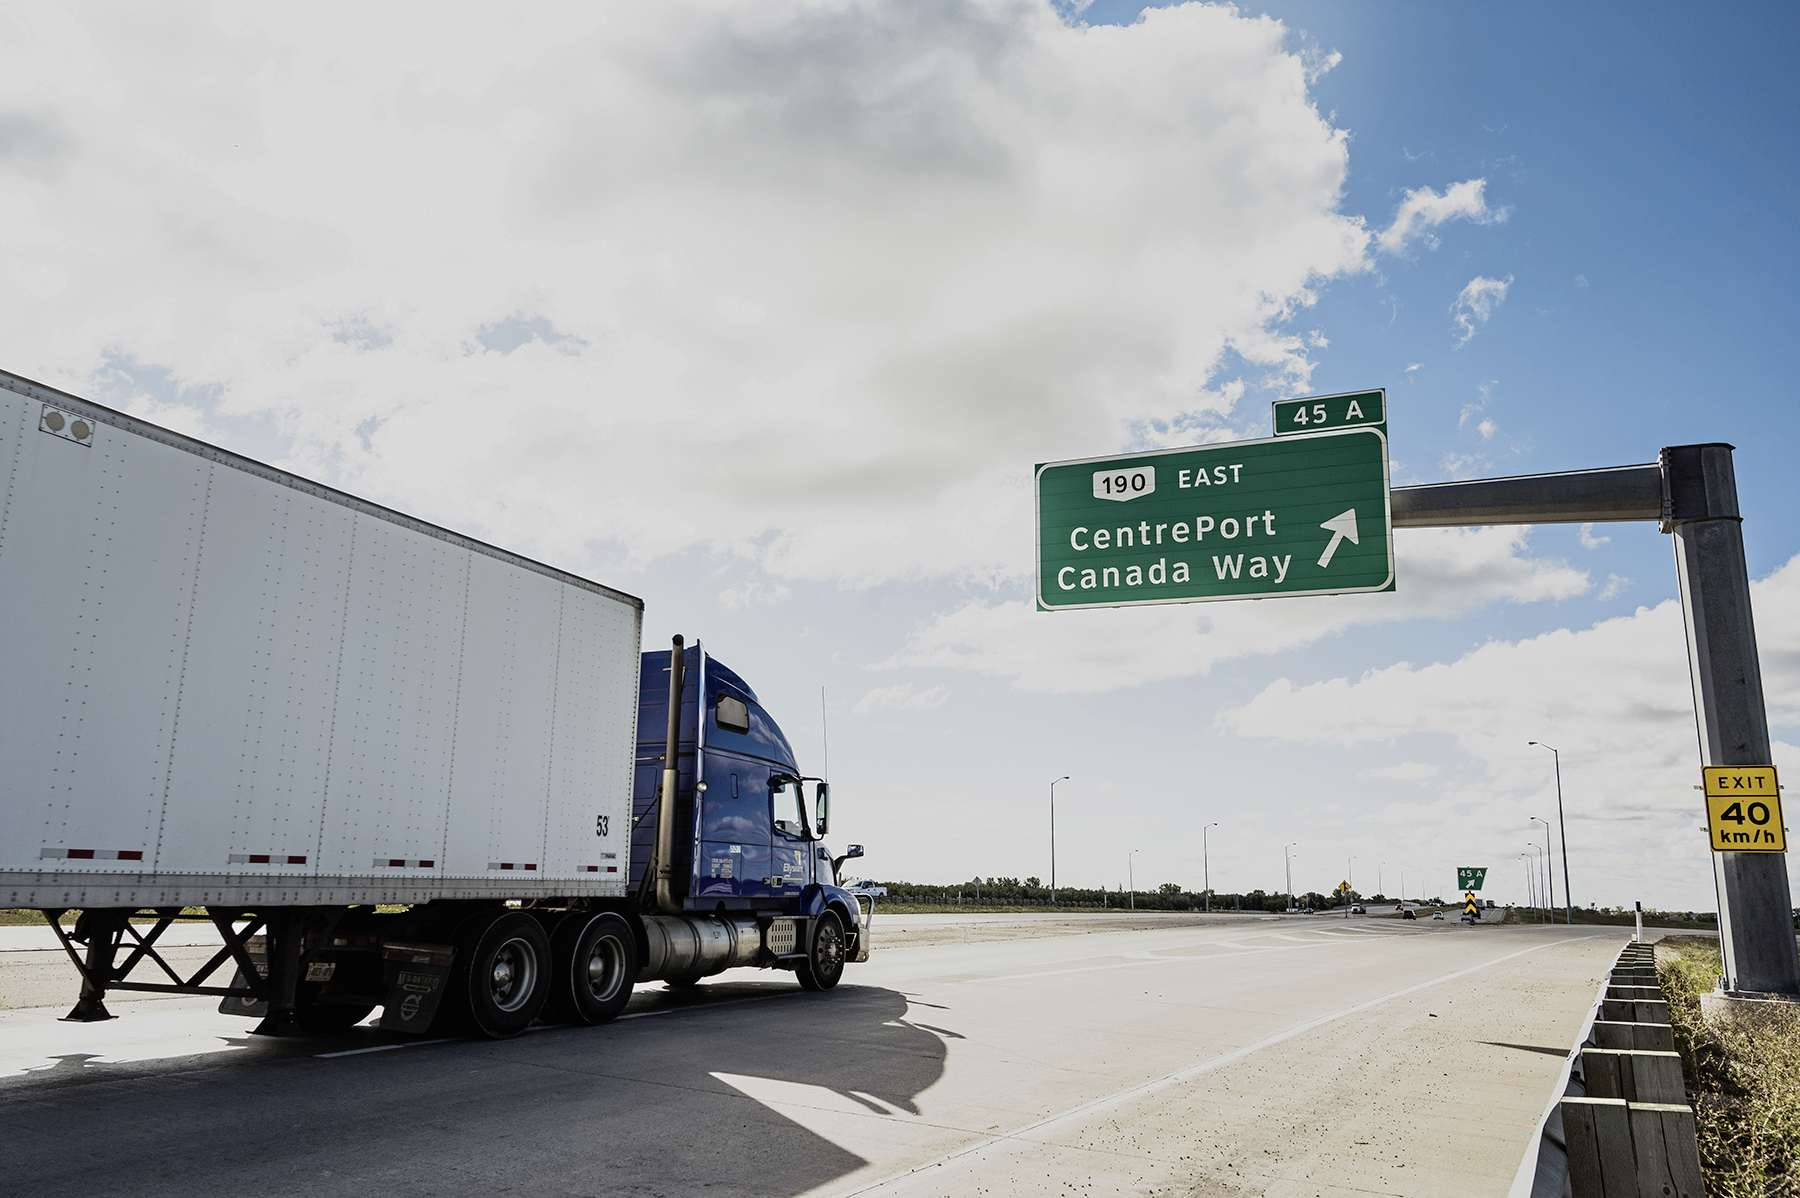 A semi passing a sign pointing to CentrePort Canada Way.